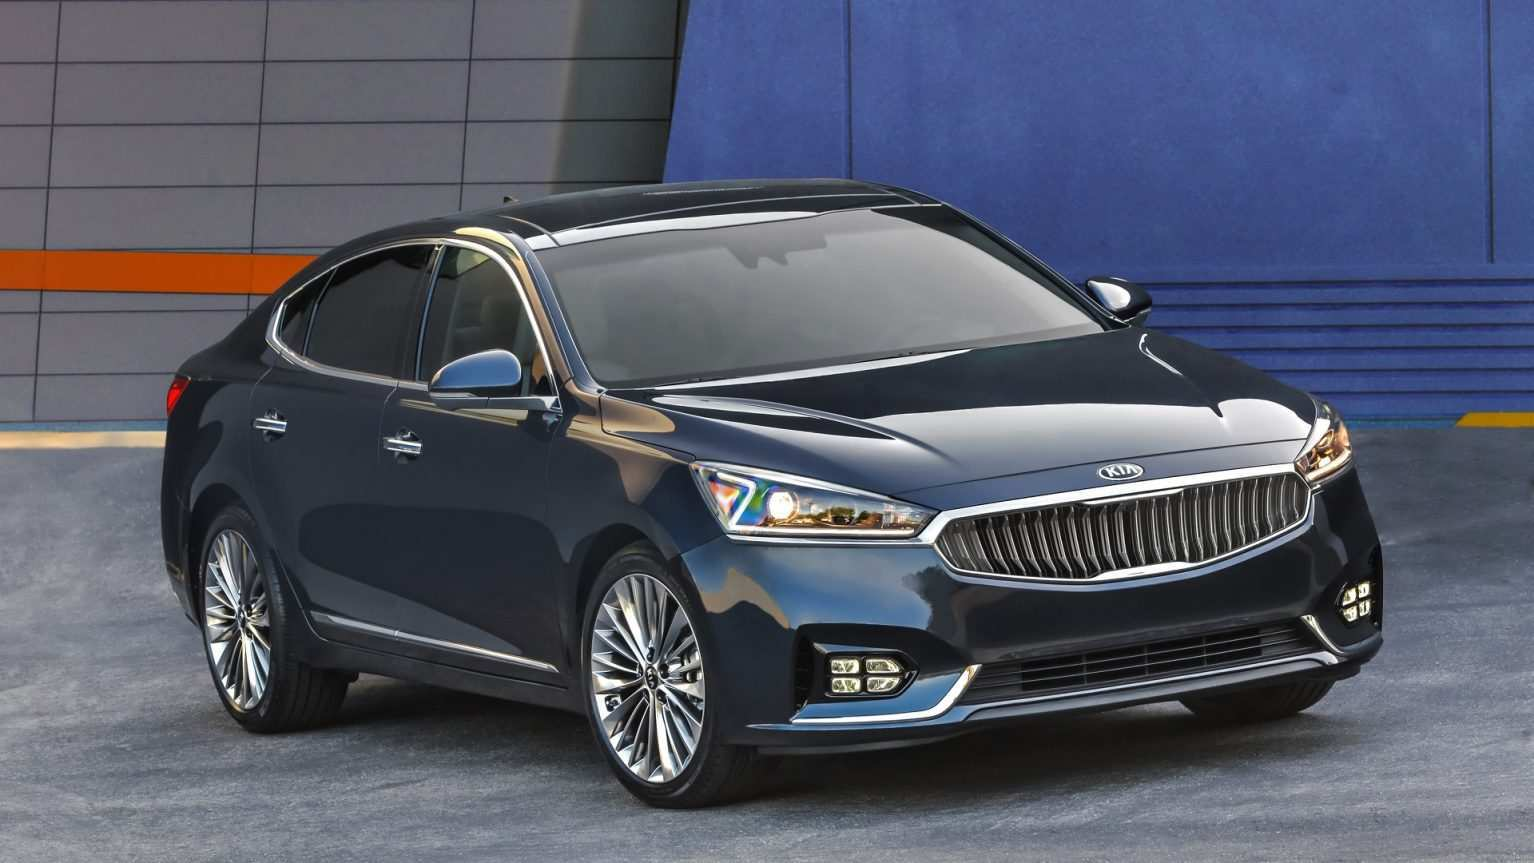 51 All New 2019 Kia Cadenza Research New for 2019 Kia Cadenza